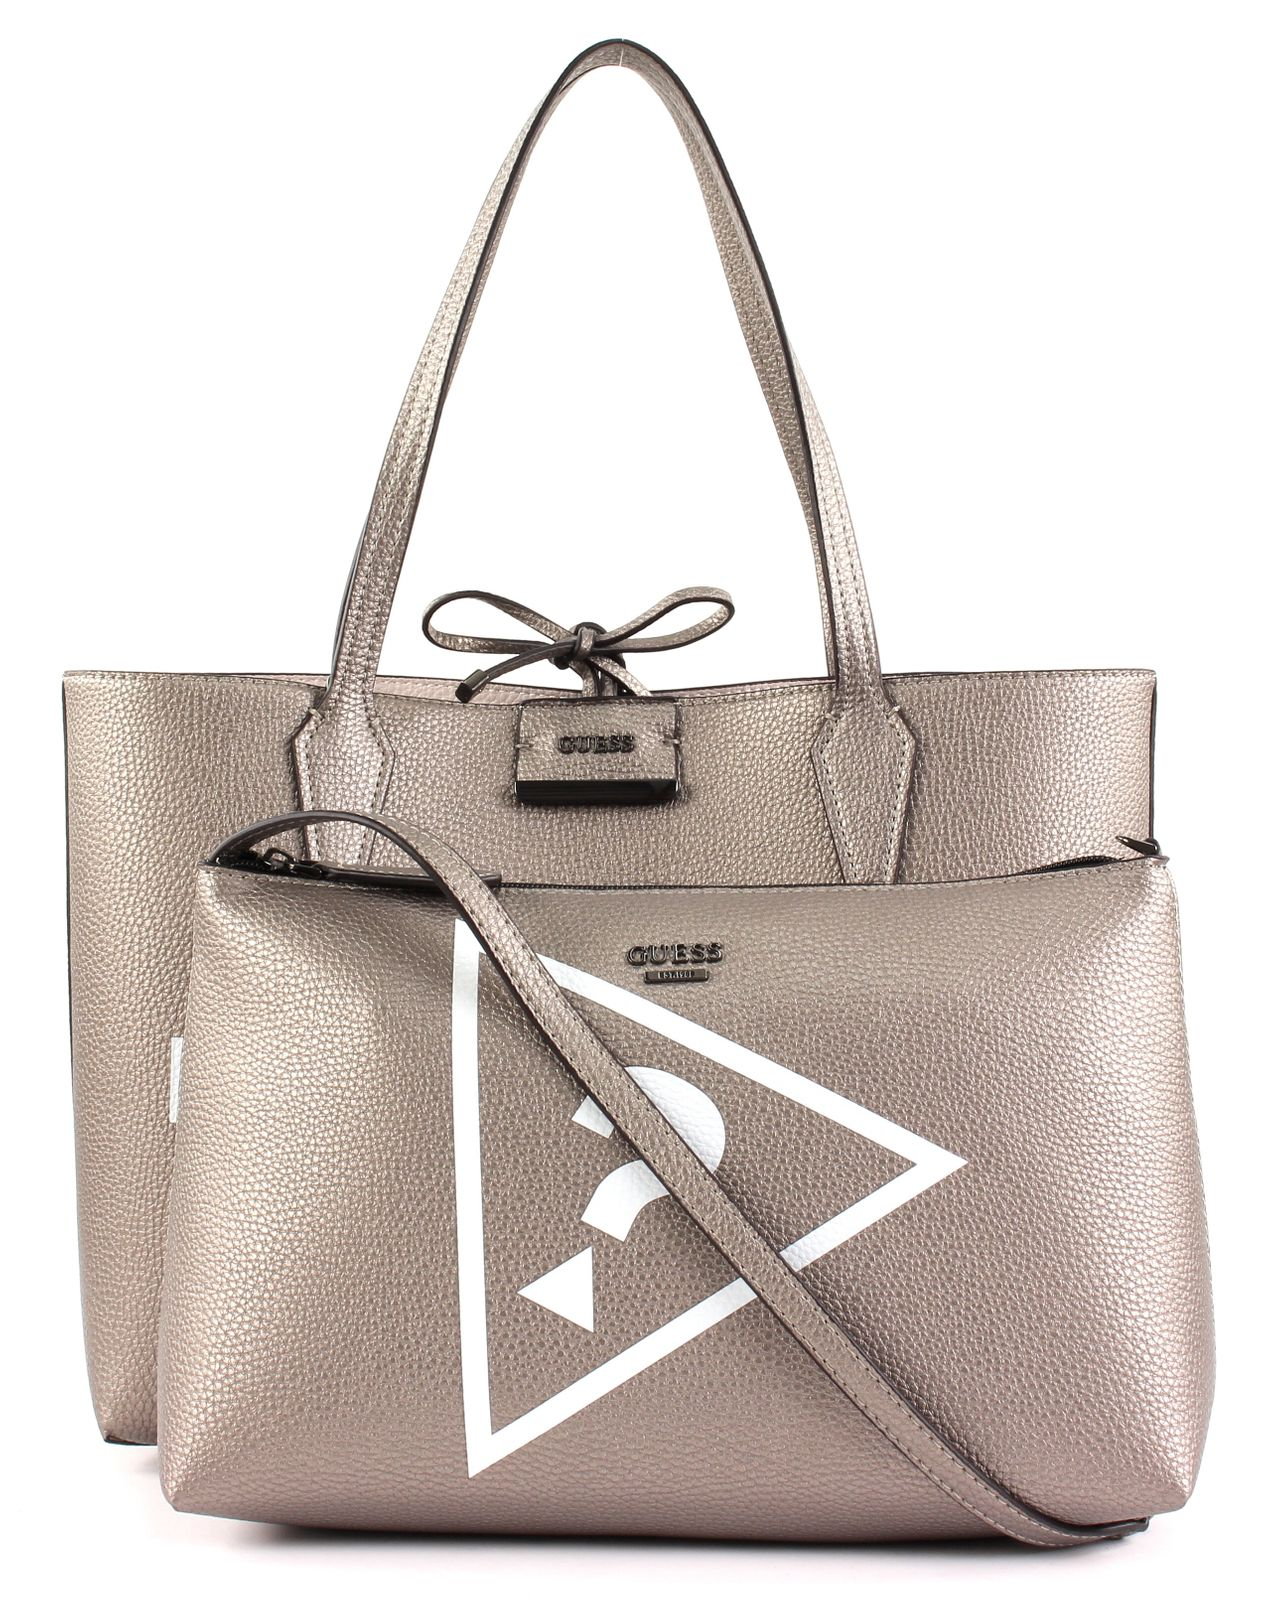 Details about GUESS Bobbi Inside Out Tote Shopper Shoulder Bag Pewter Stone Silver show original title